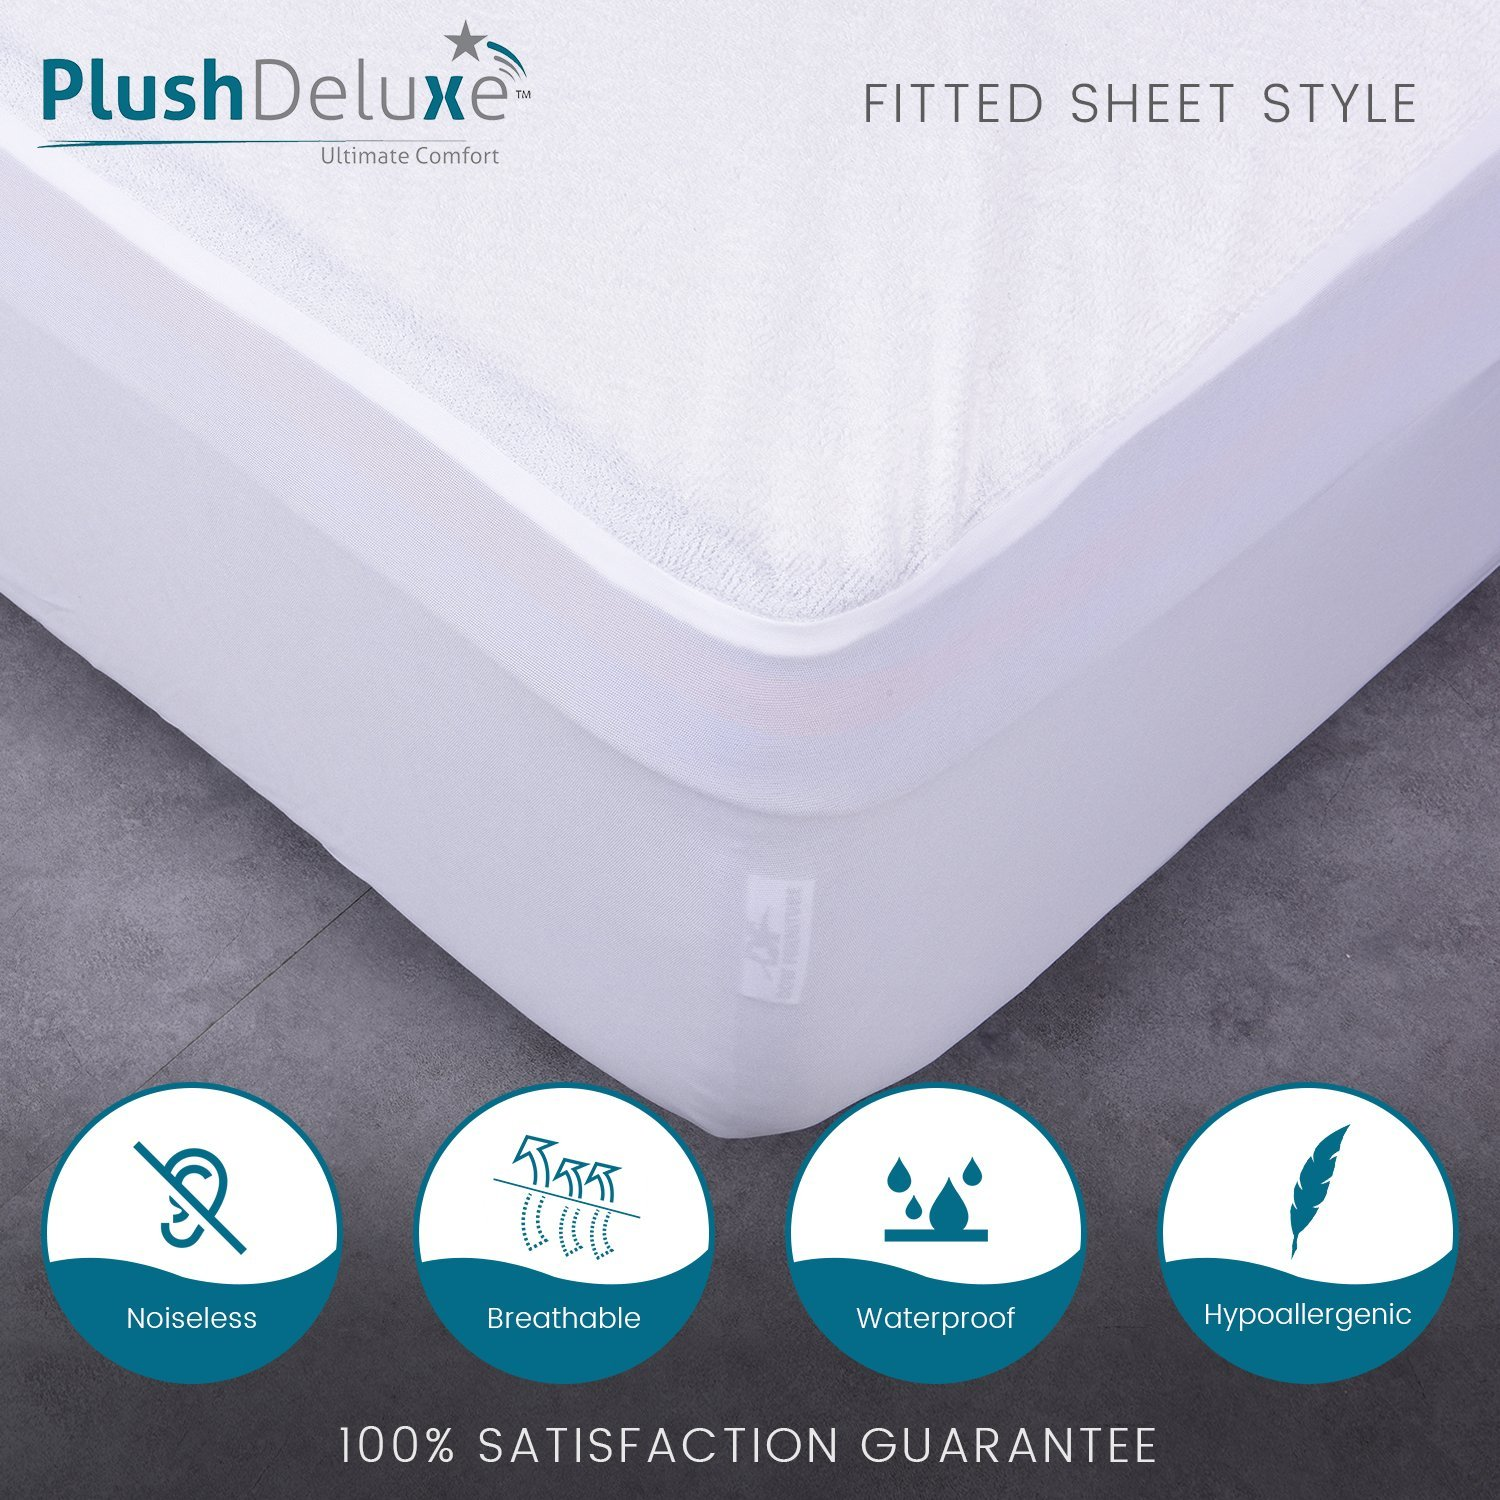 Breathable Soft Cotton Terry Surface PlushDeluxe Mini Crib Size Premium 100/% Waterproof Mattress Protector Hypoallergenic 10 Year Warranty from 4726 Vinyl Free